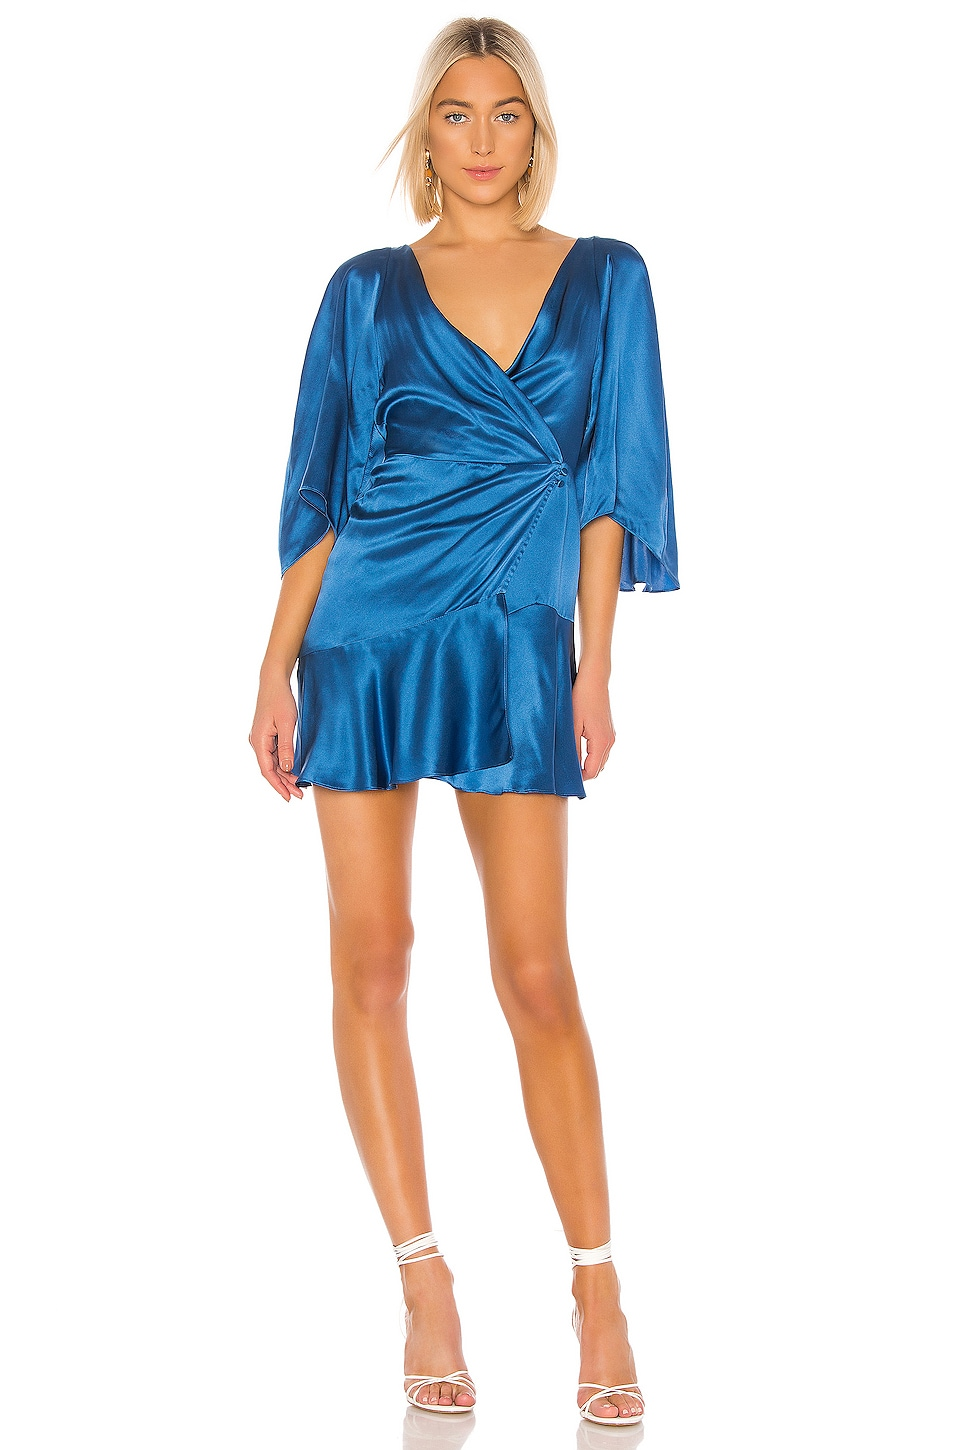 Free People Strike A Pose Mini Dress in Blue